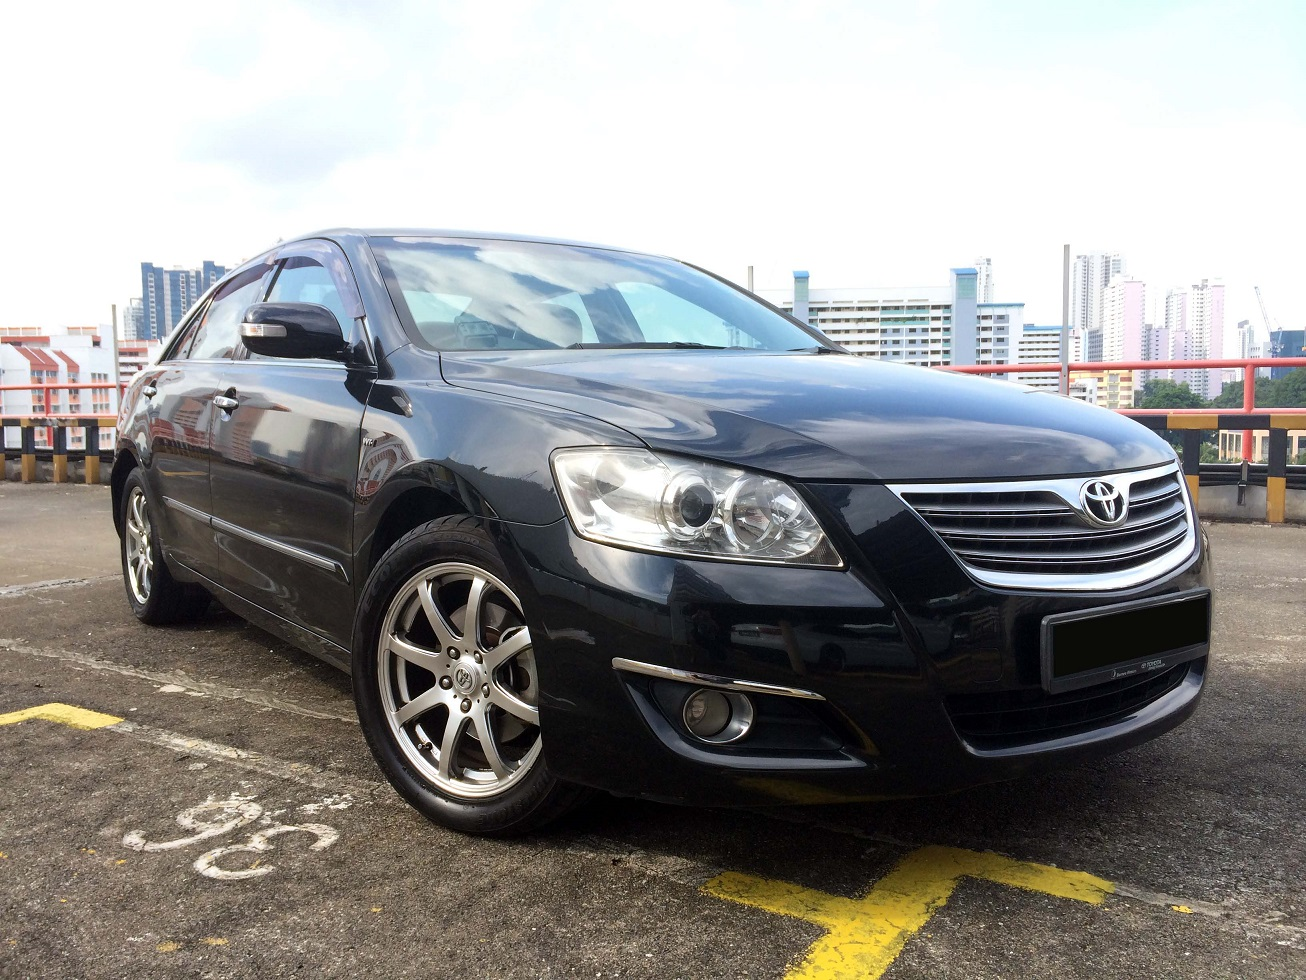 pre owned toyota camry 2 4a price revised. Black Bedroom Furniture Sets. Home Design Ideas